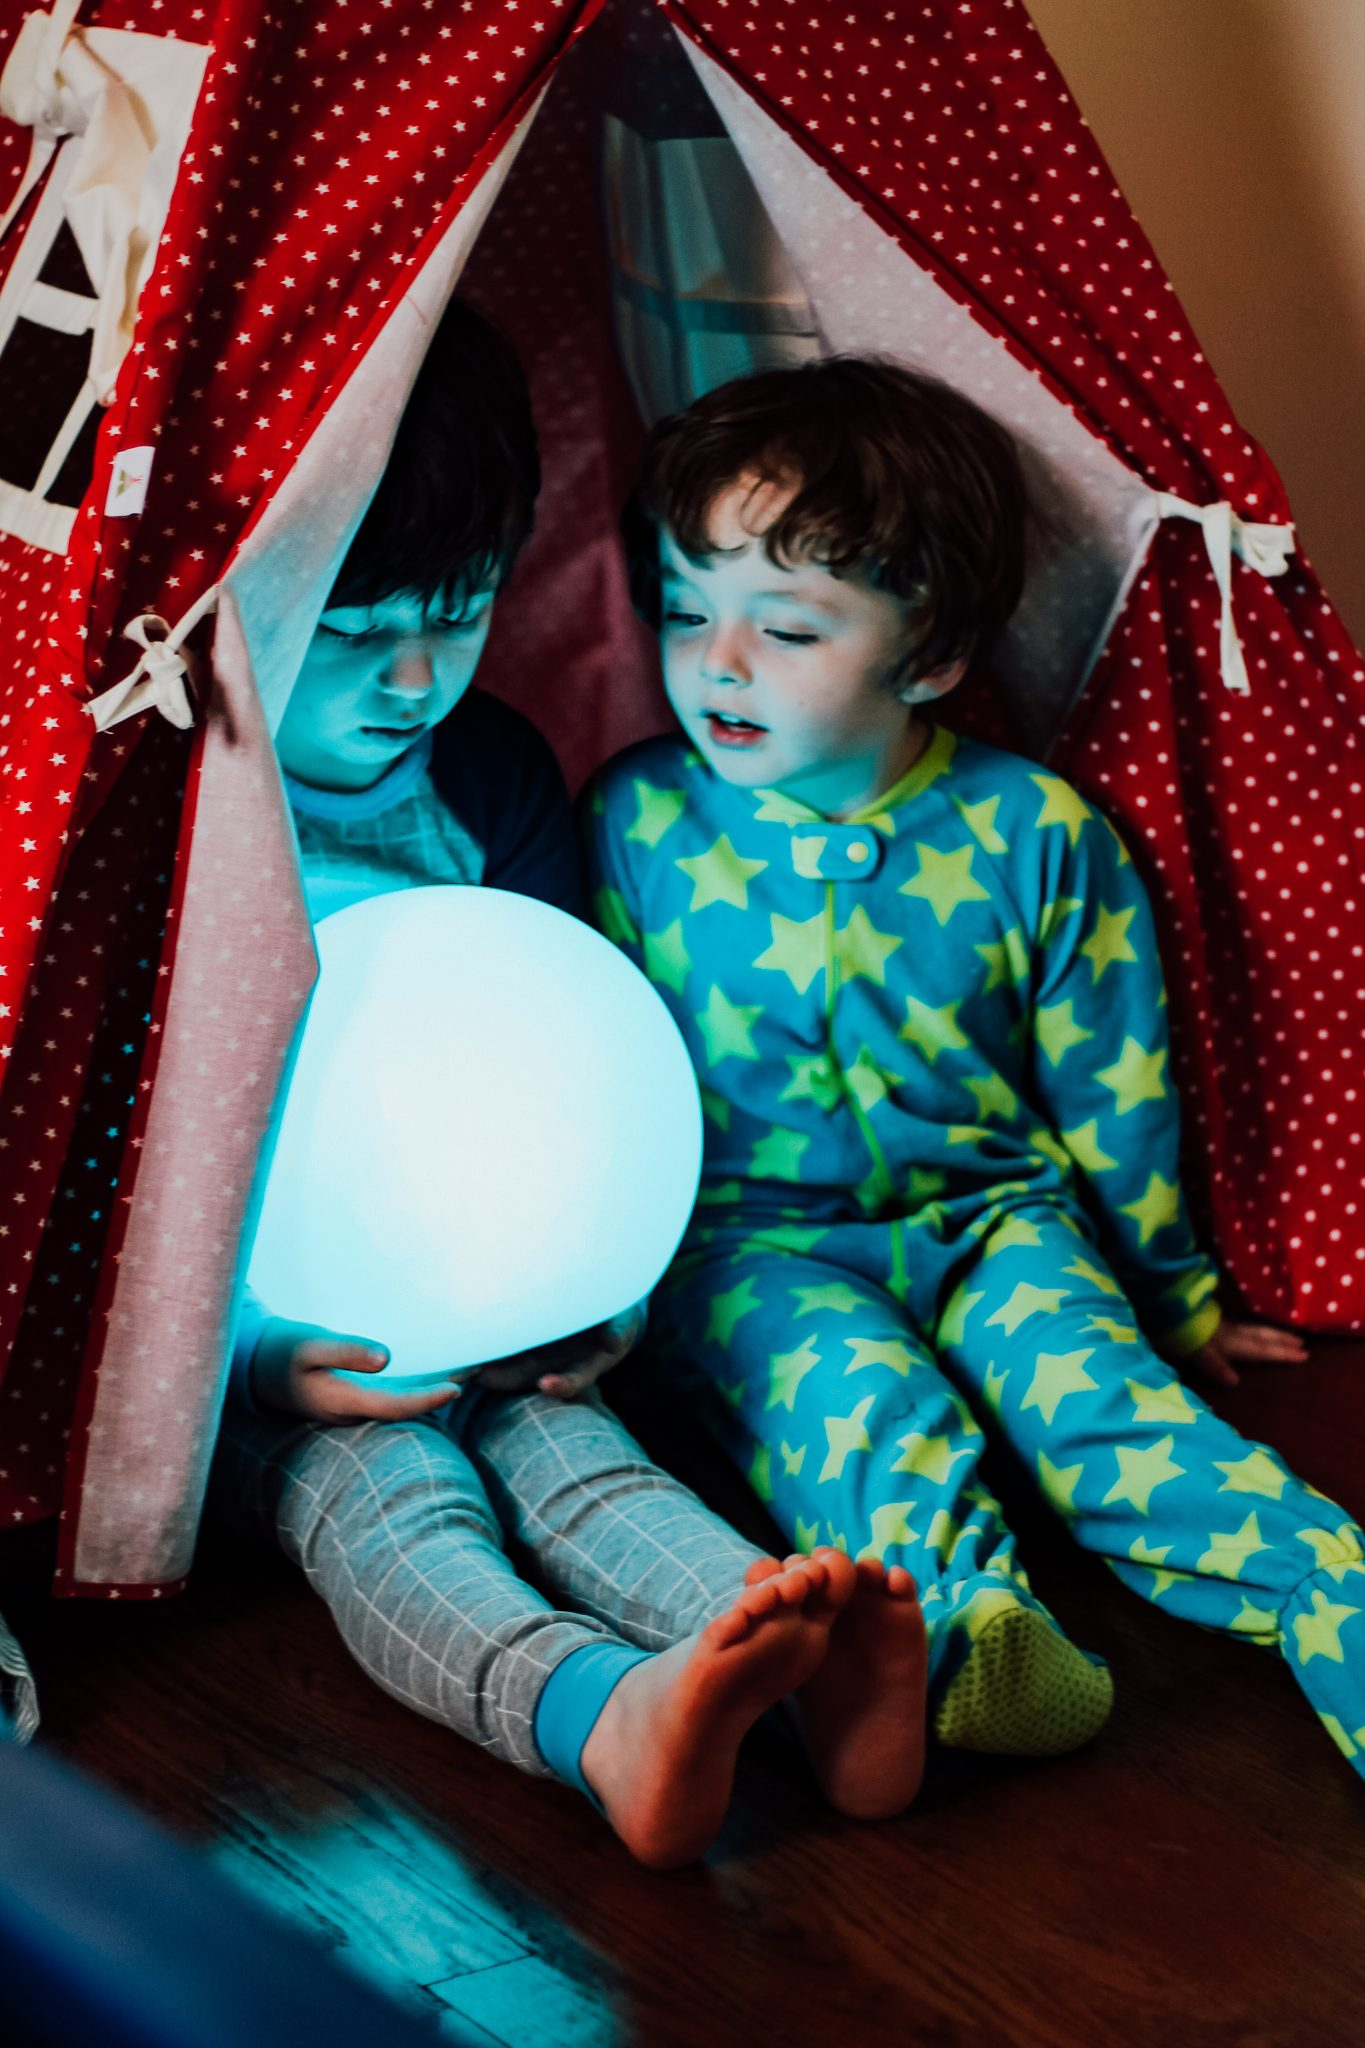 Autism: Using a Soothing LED Light for Bedtime